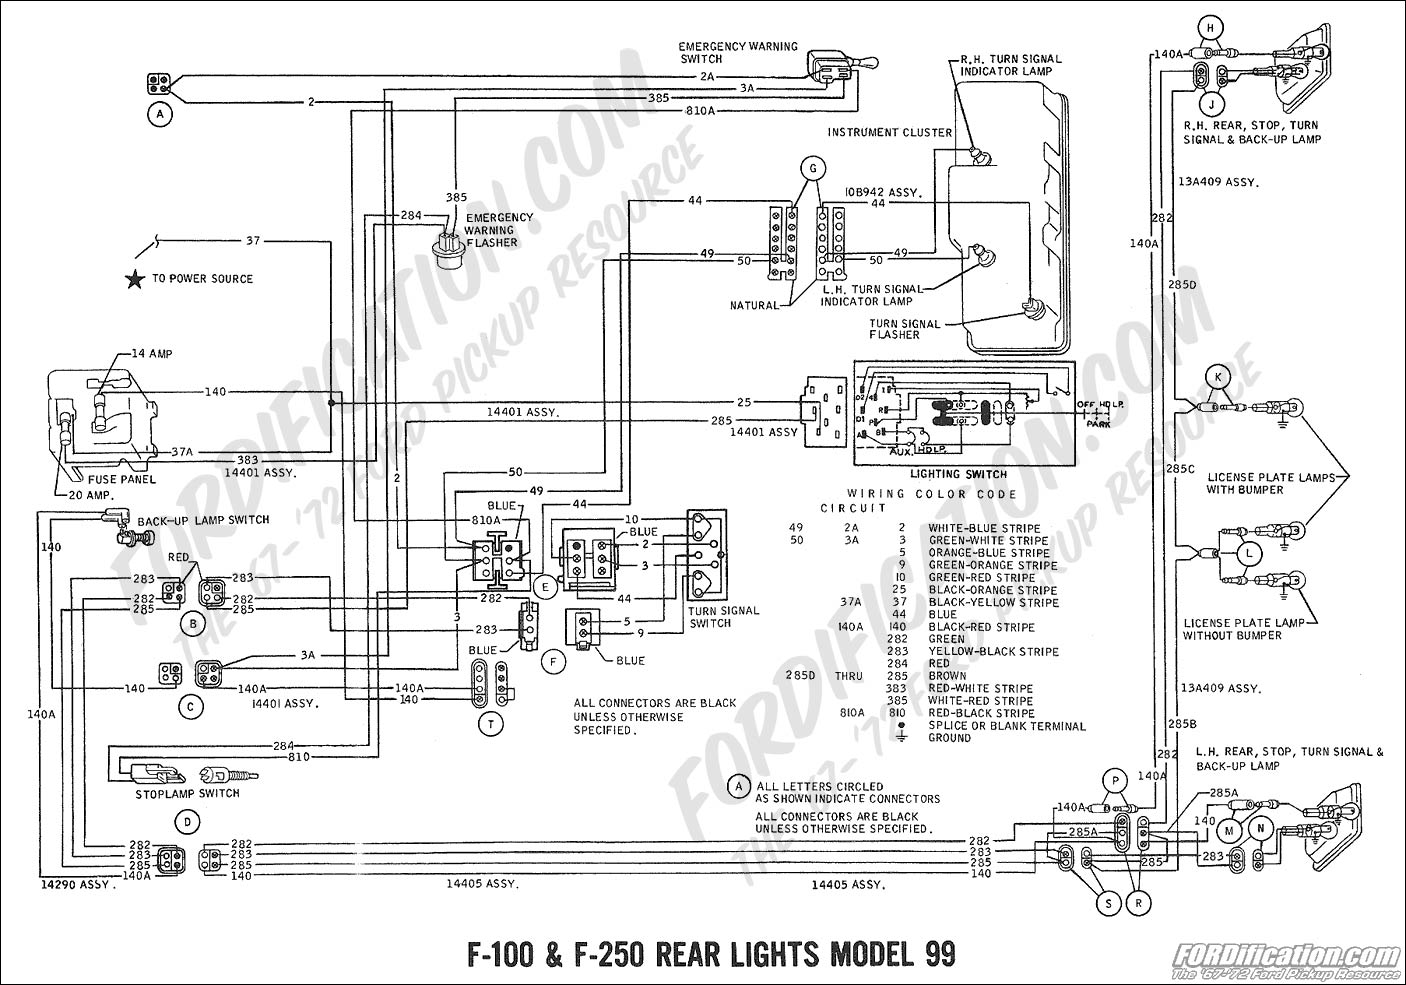 99 f350 headlight wiring diagram 1948 mg tc 2000 rear lights free engine